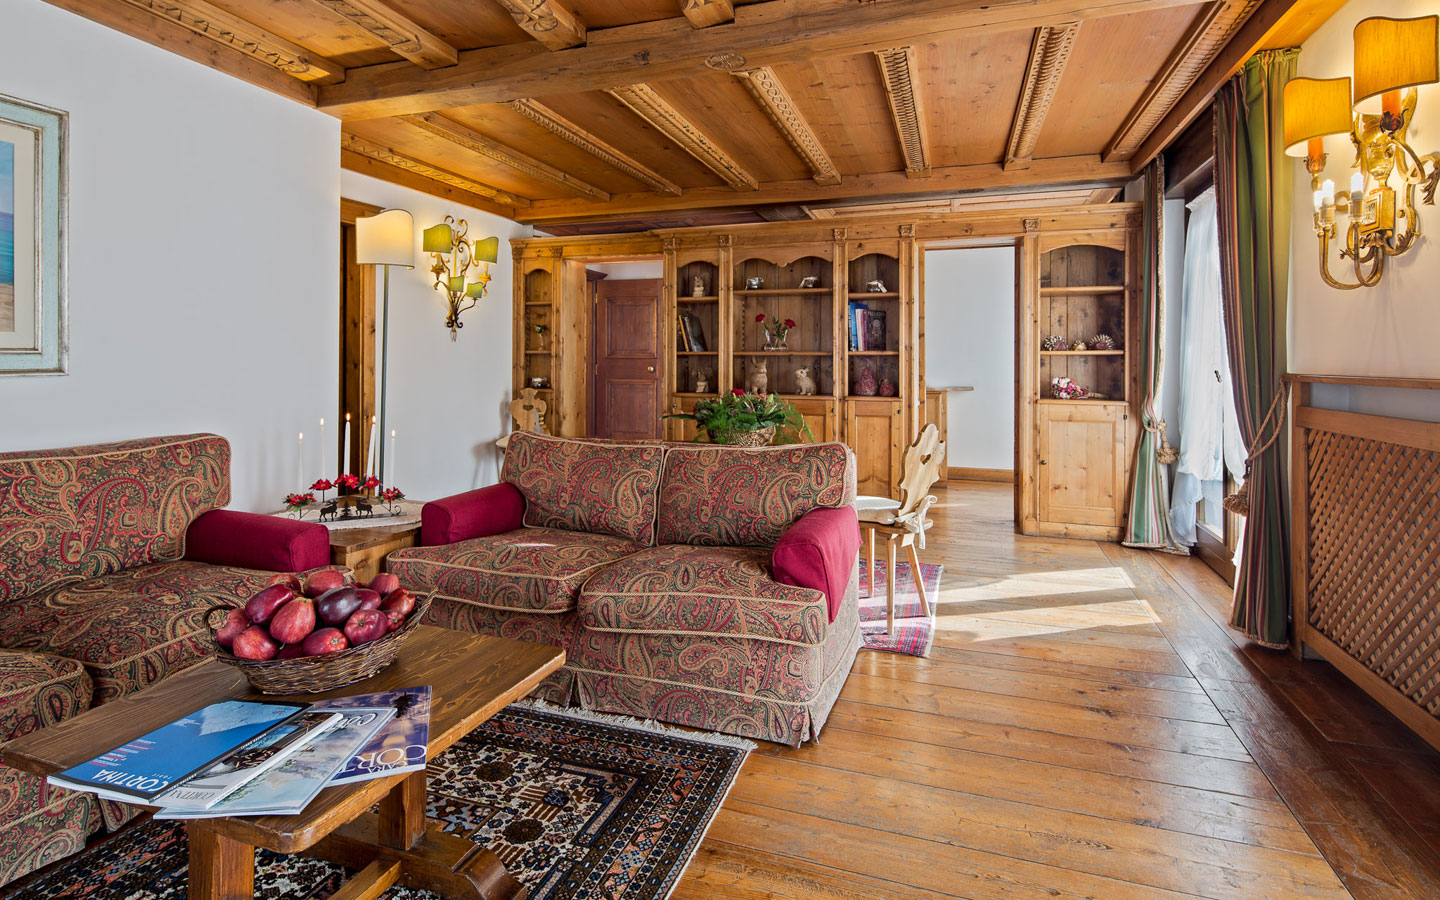 Camere & Suites a Cortina d'Ampezzo